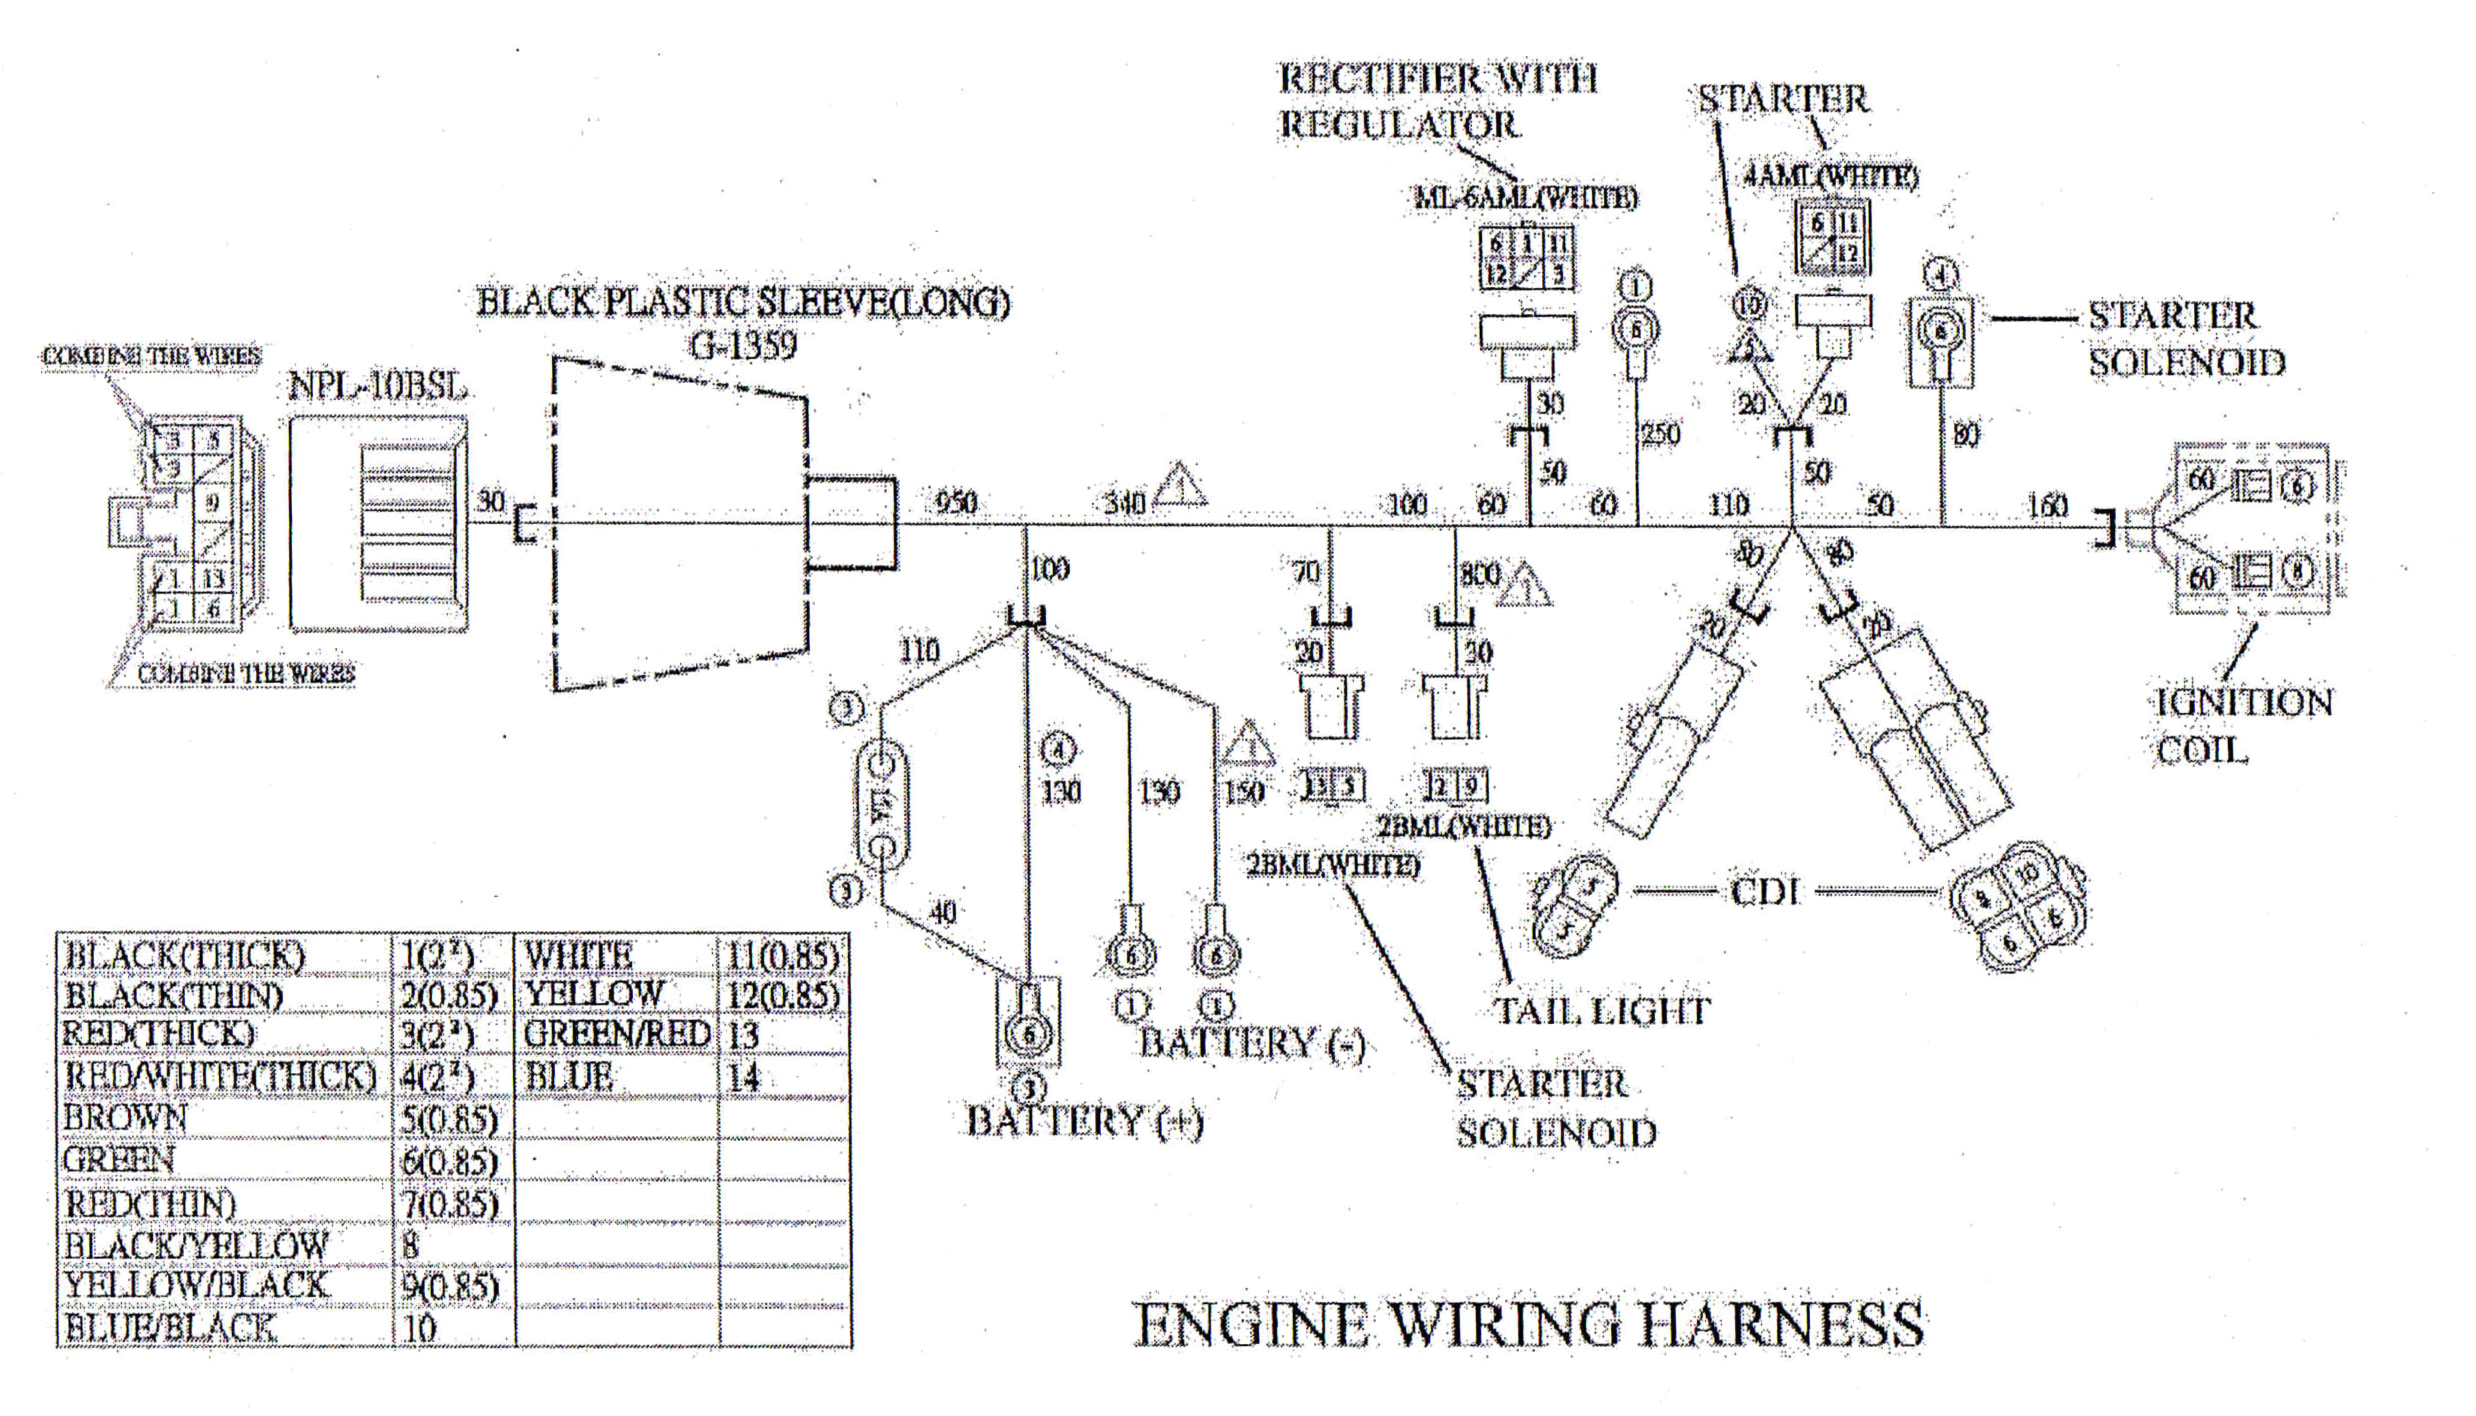 wiring diagram for the engine wiring harness to the yerf dog cuv